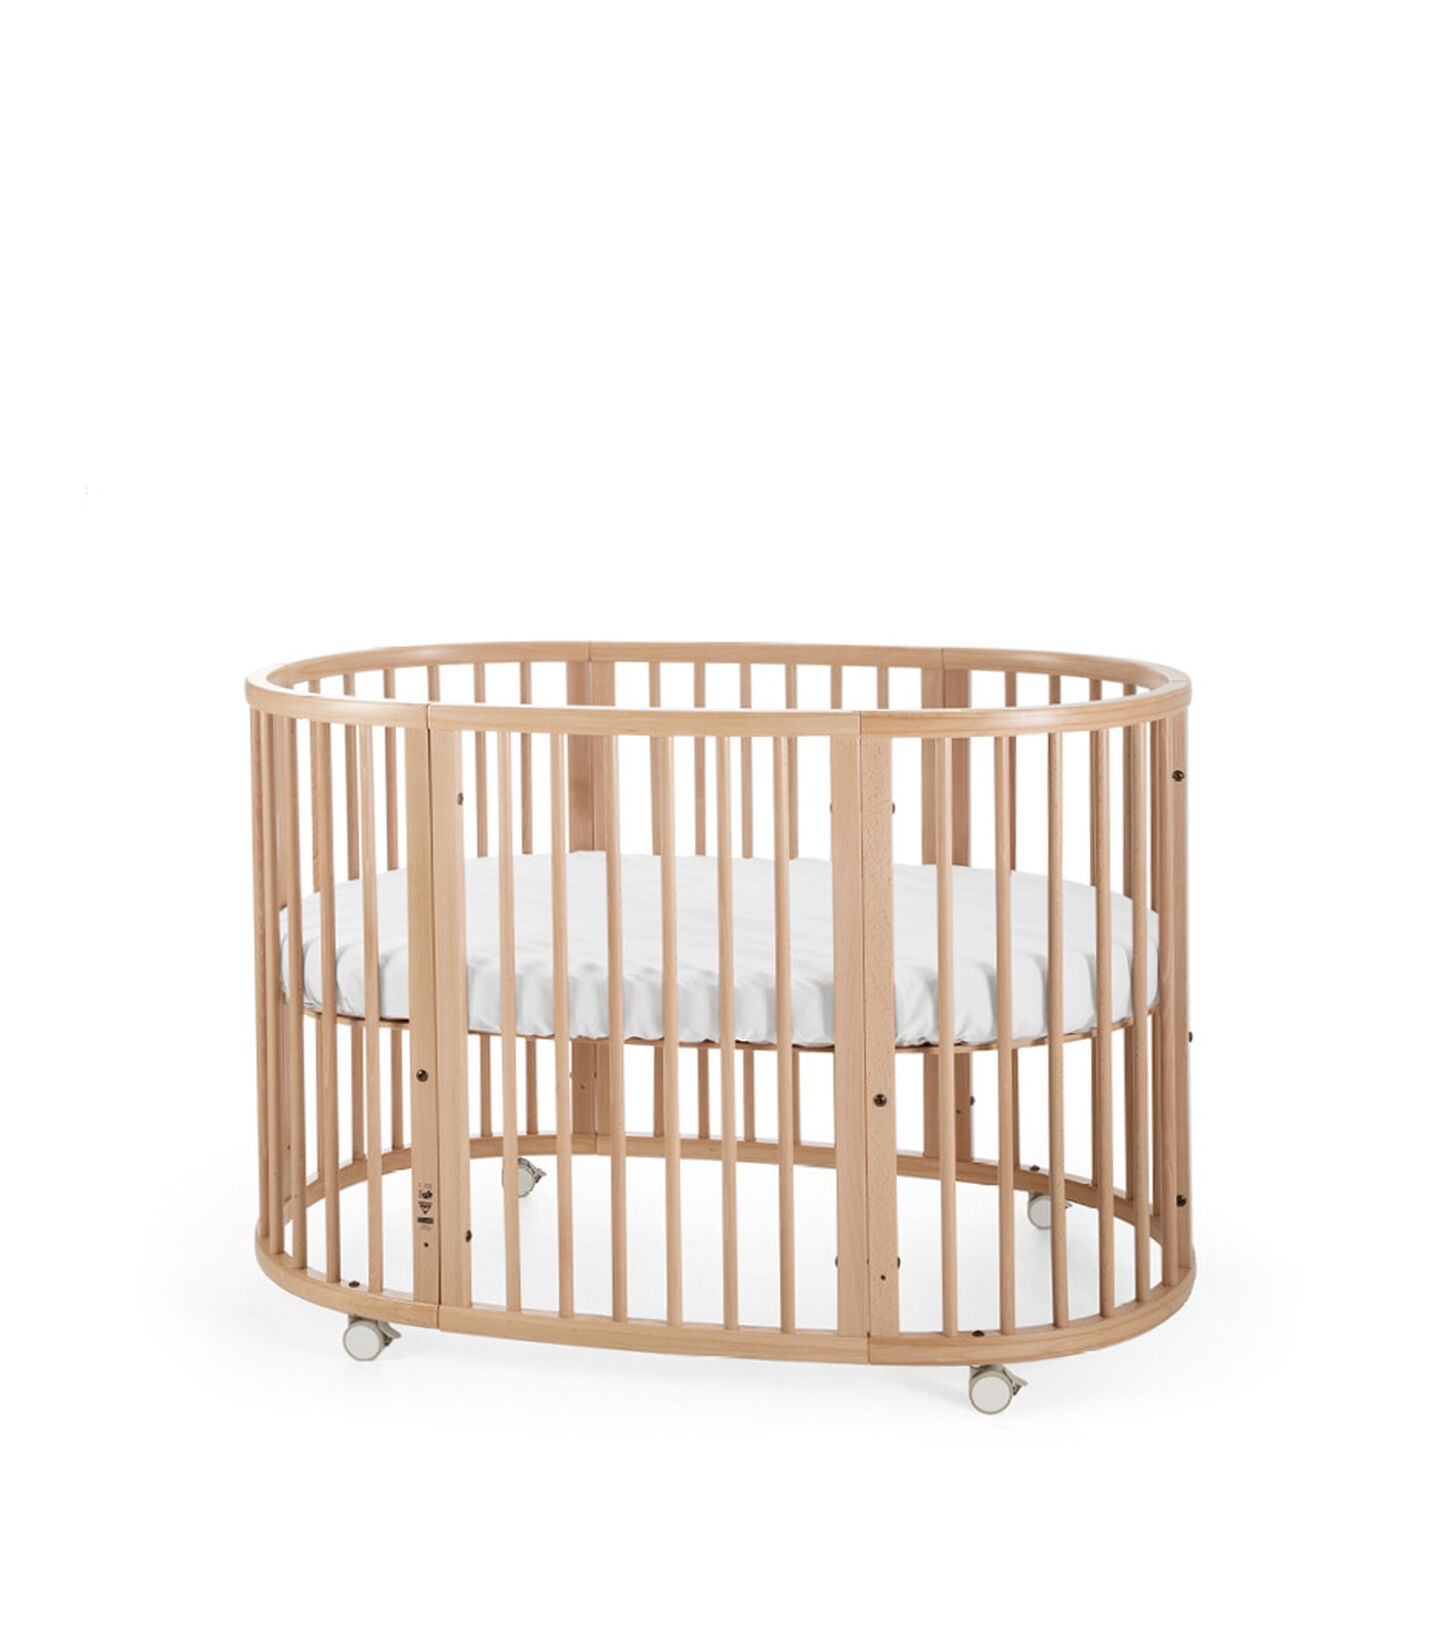 Stokke® Sleepi™ Bed Extension Naturell, Naturel, mainview view 3